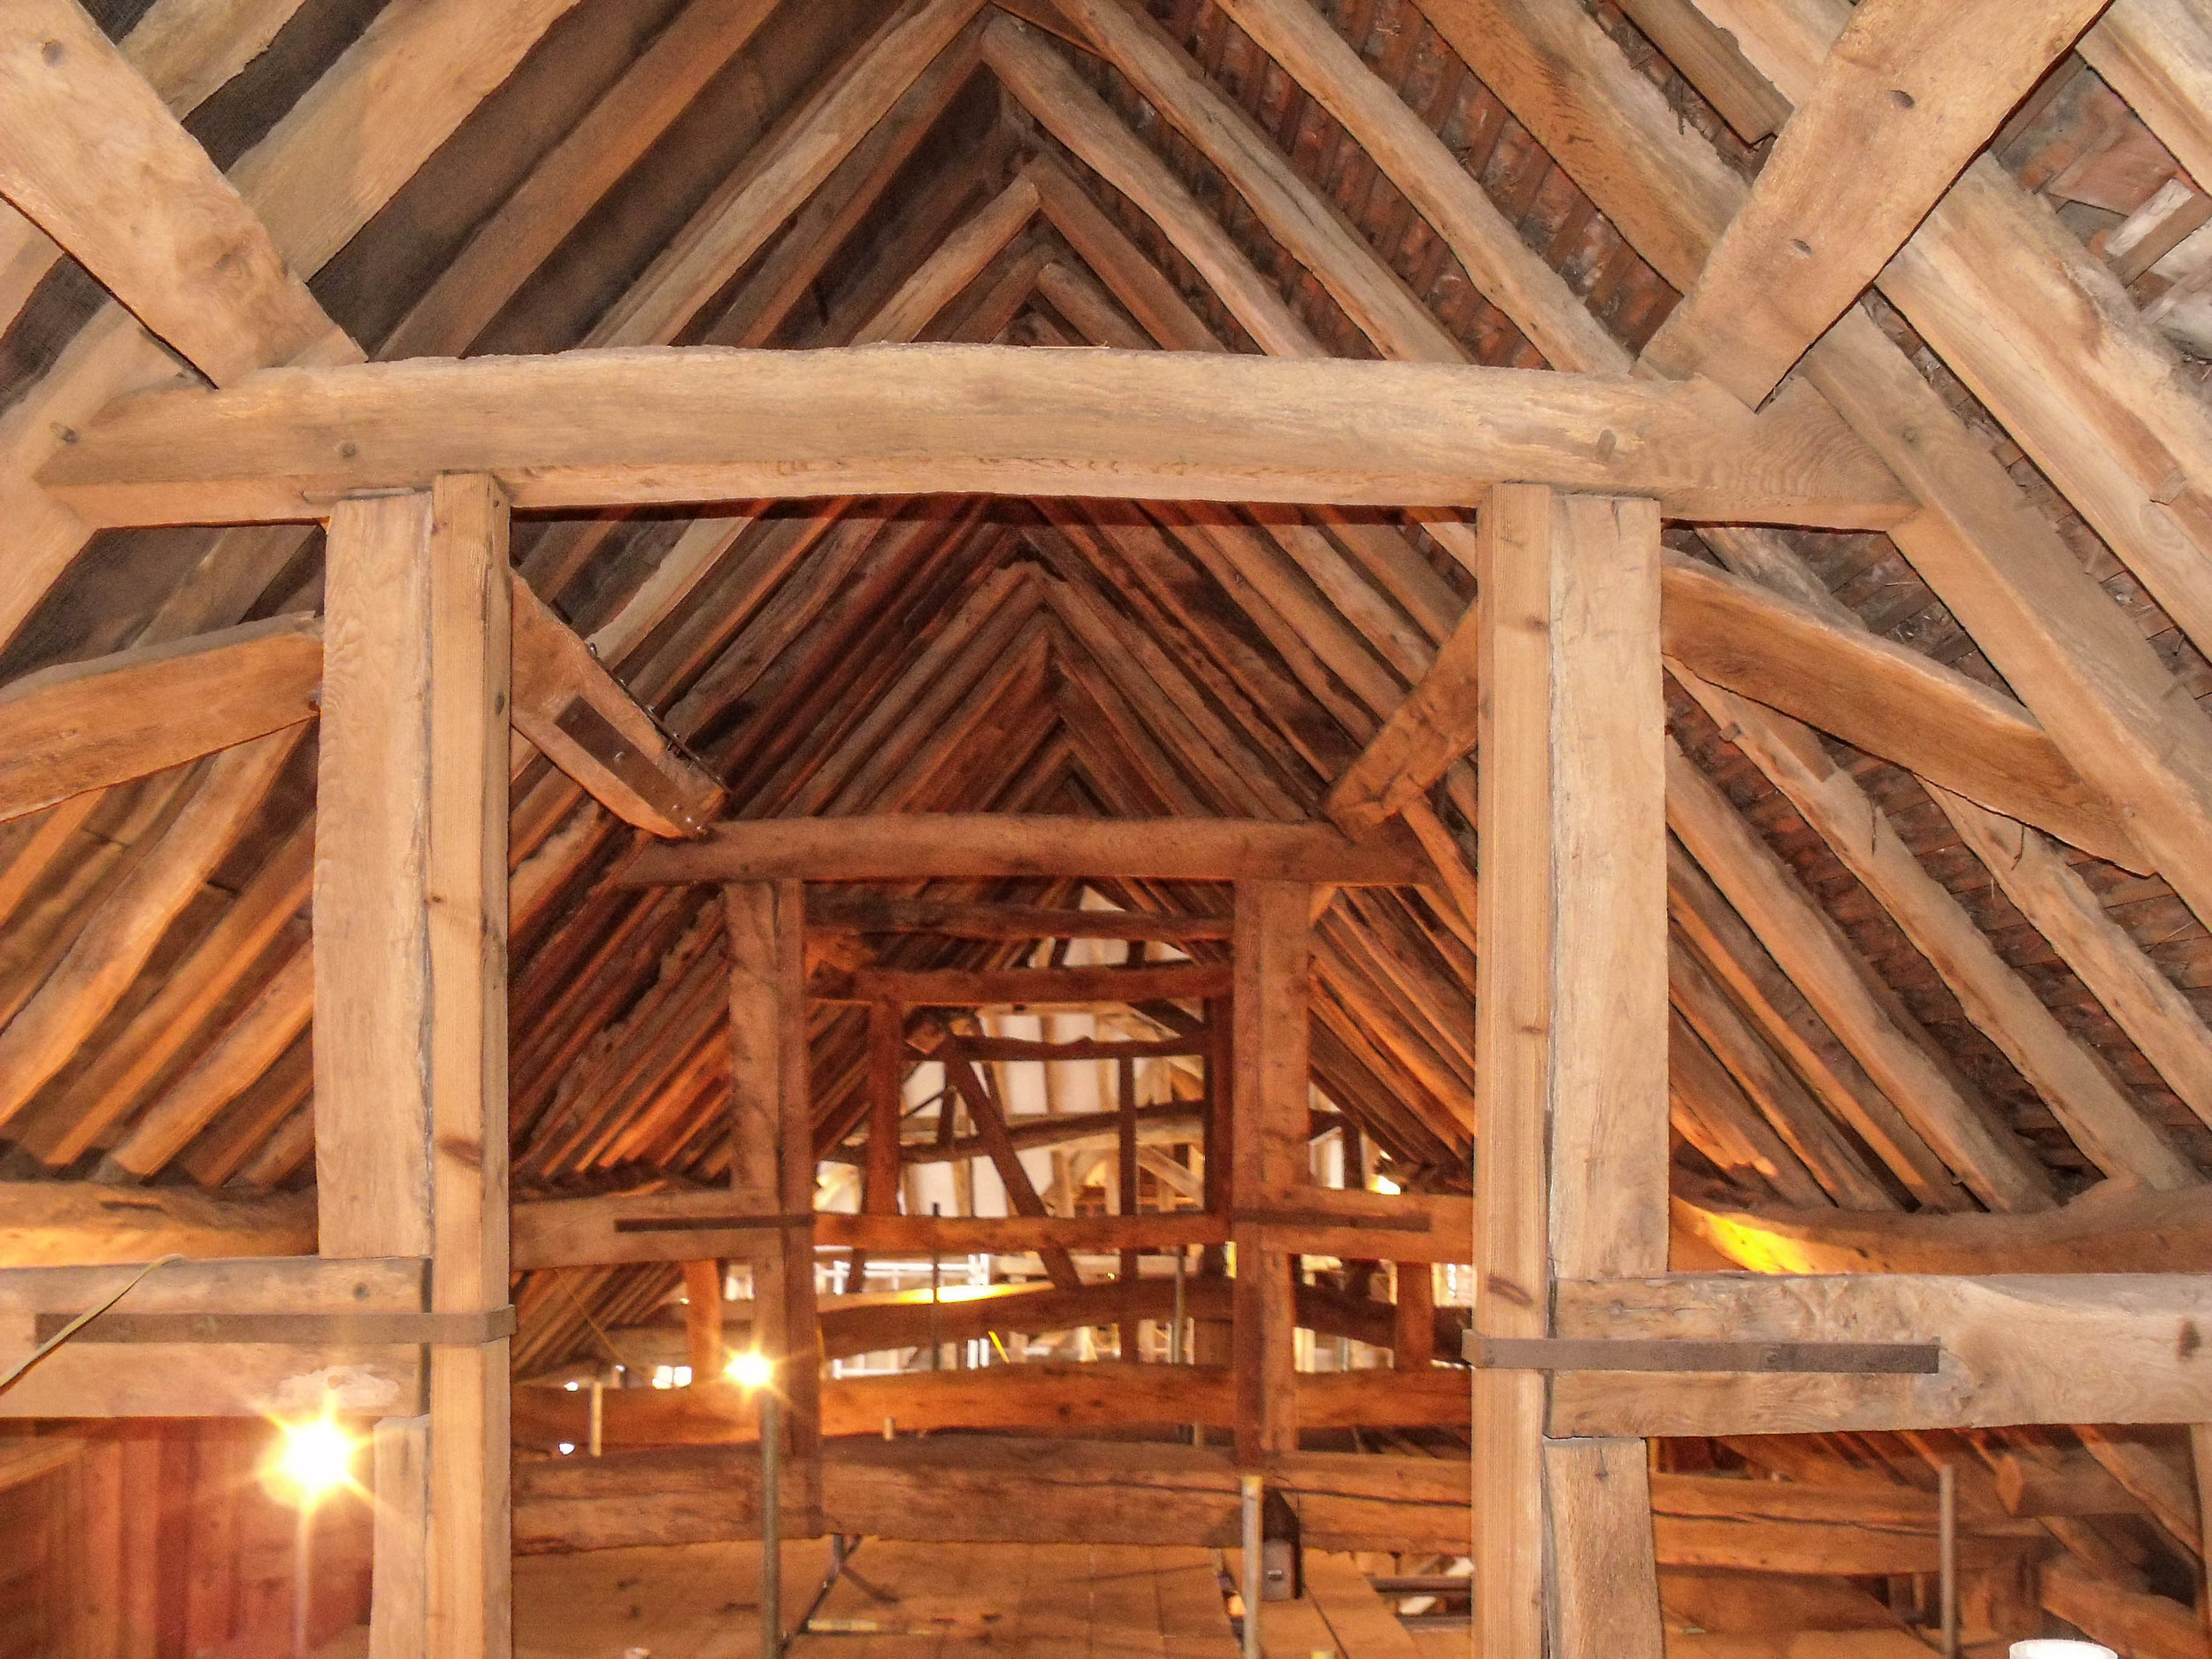 A timber-frame barn where LSC undertook inspection surveys in advance of conversion works